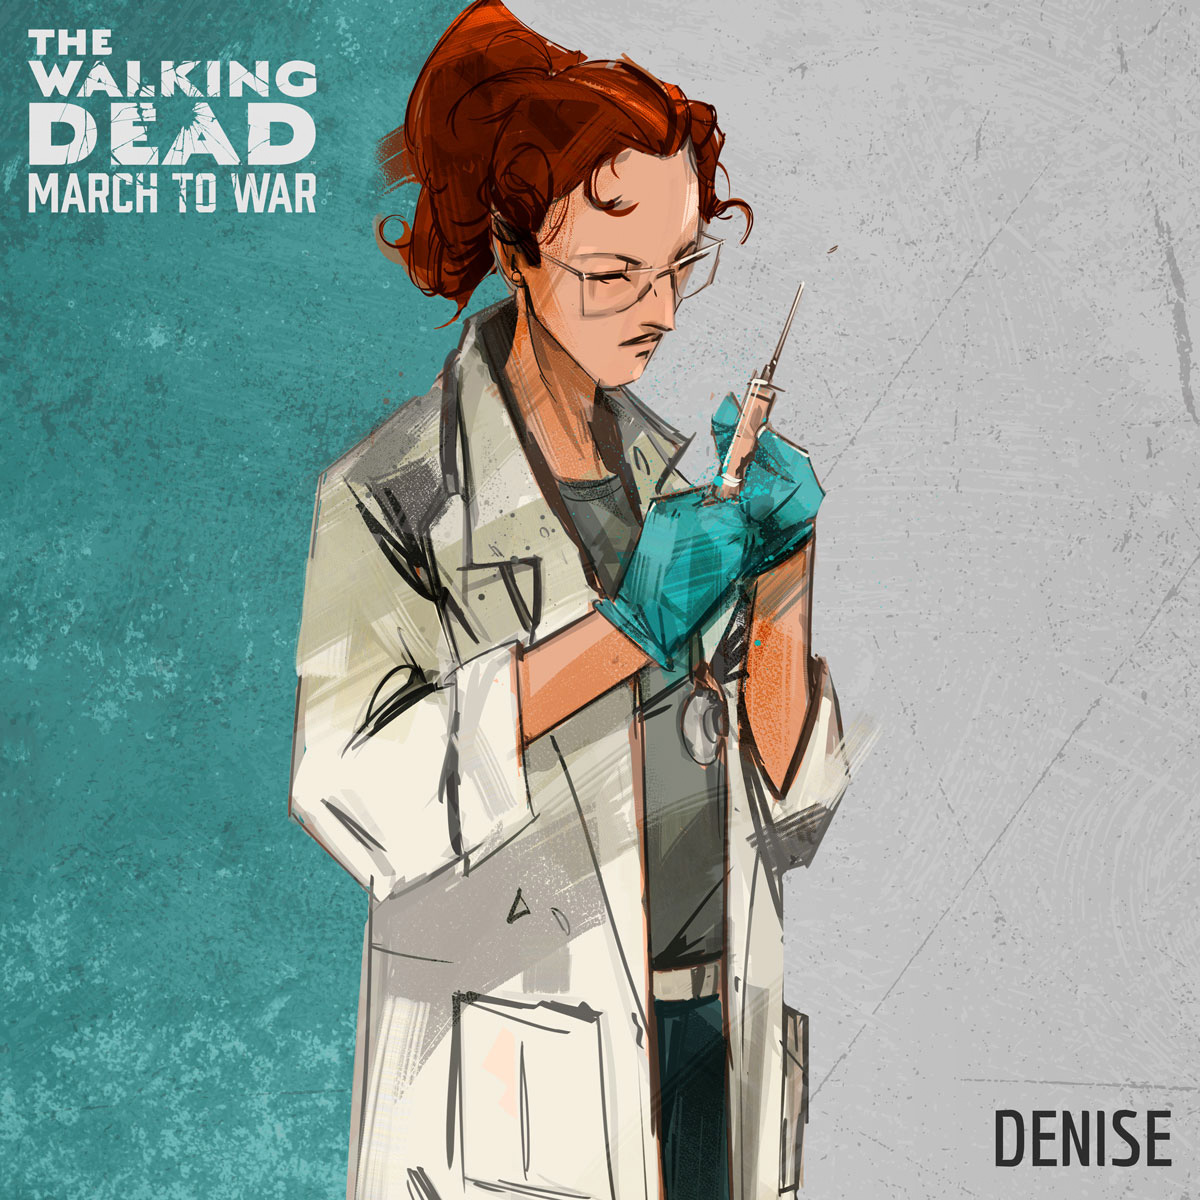 Denise - A multitalented doctor who specializes in protecting survivors via reduced damage and improved healing.